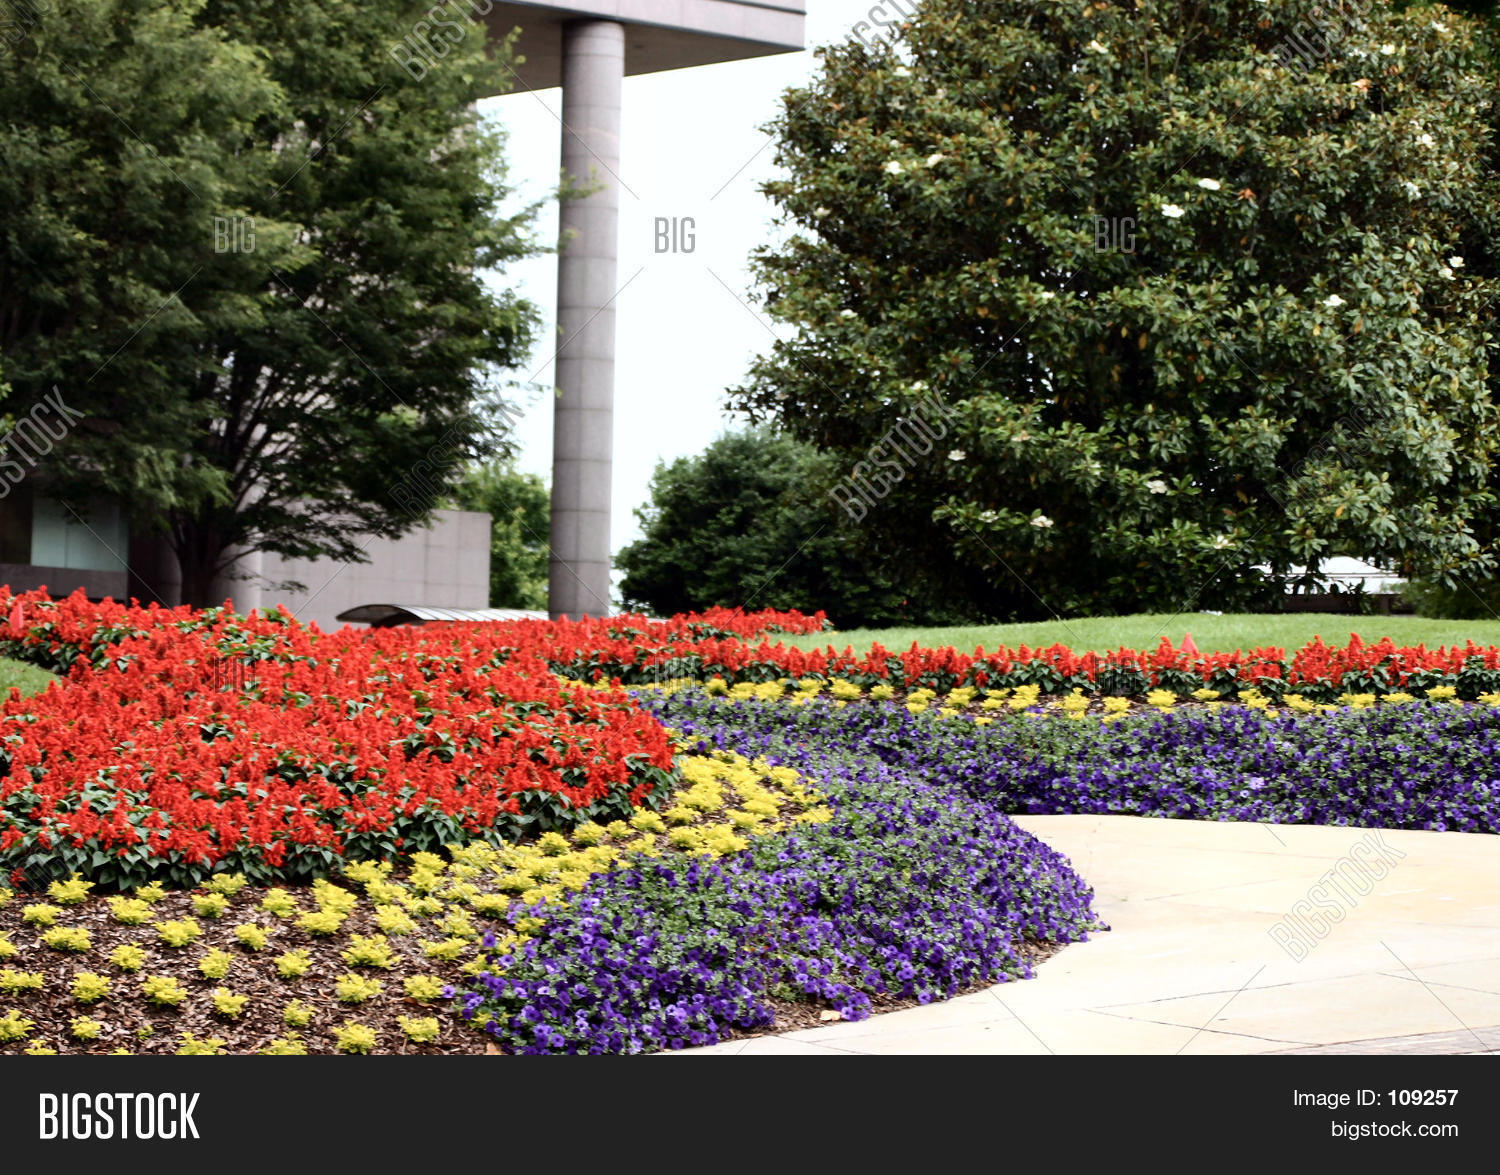 Professional landscaping image photo bigstock for Professional landscaping